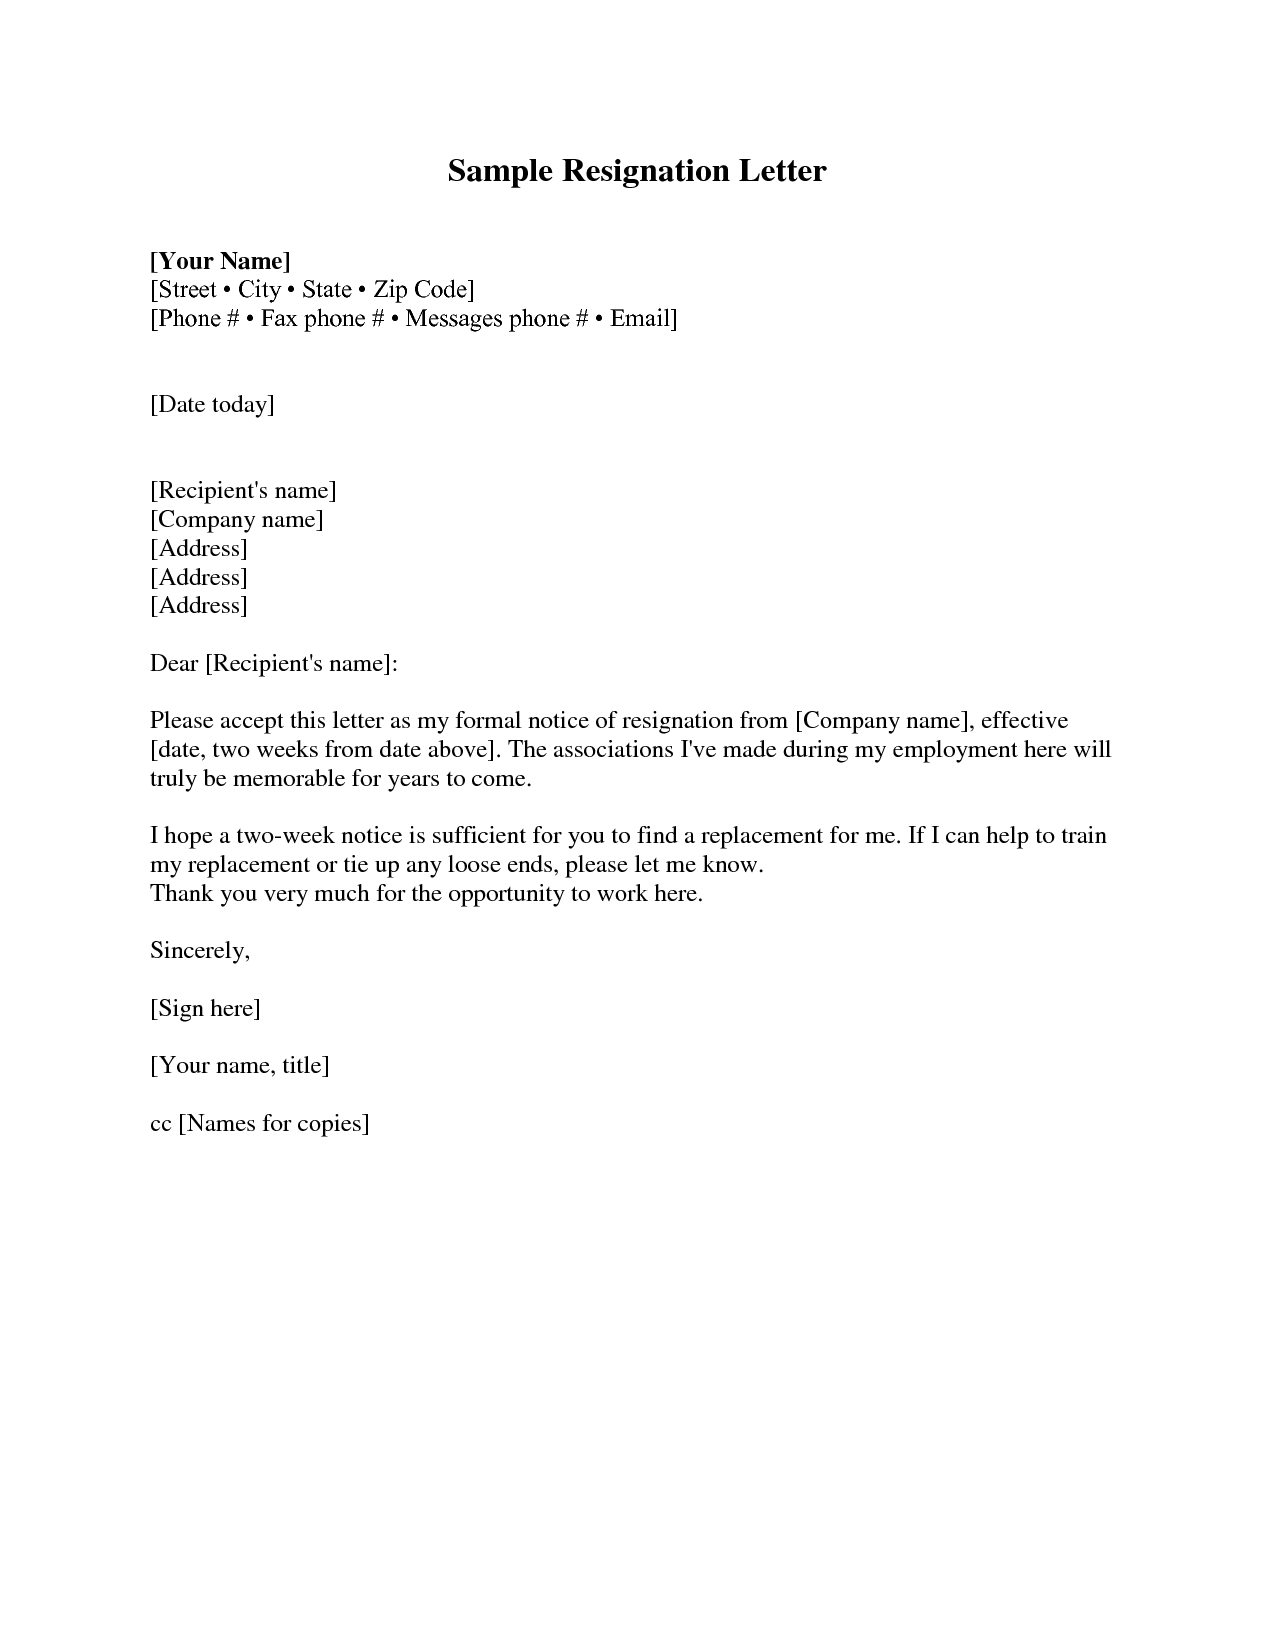 resignation letter template free download example-resignation letter sample 2 weeks notice 1-n